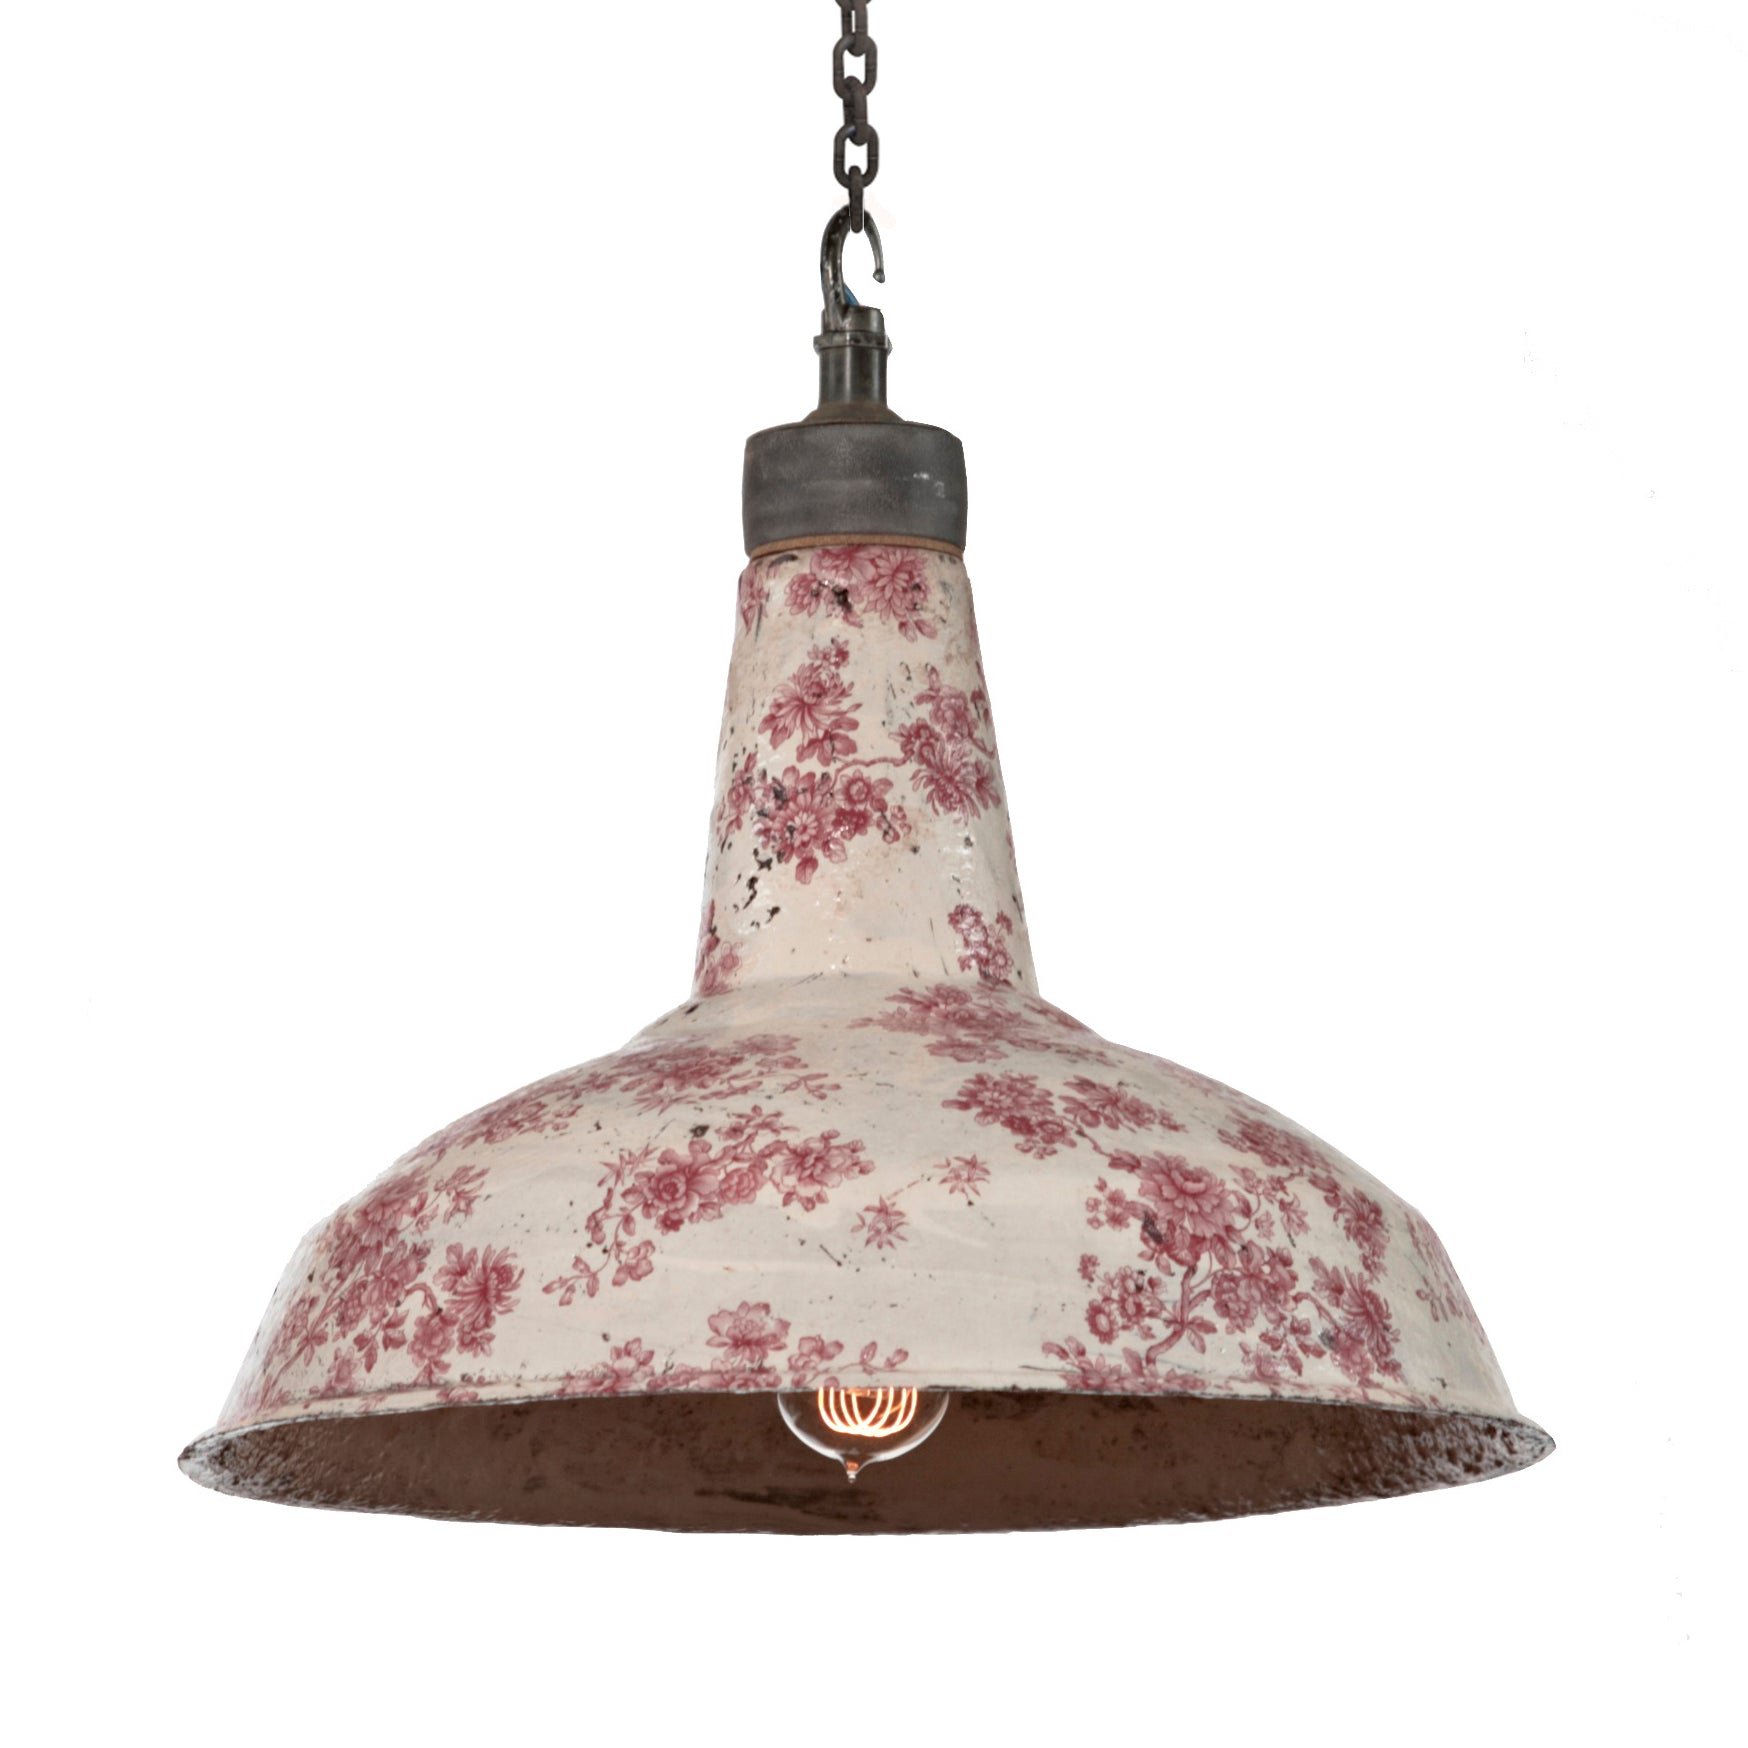 Aditi Studios Flying Scotsman ceramic pendant light in pink floral from Warehouse Home